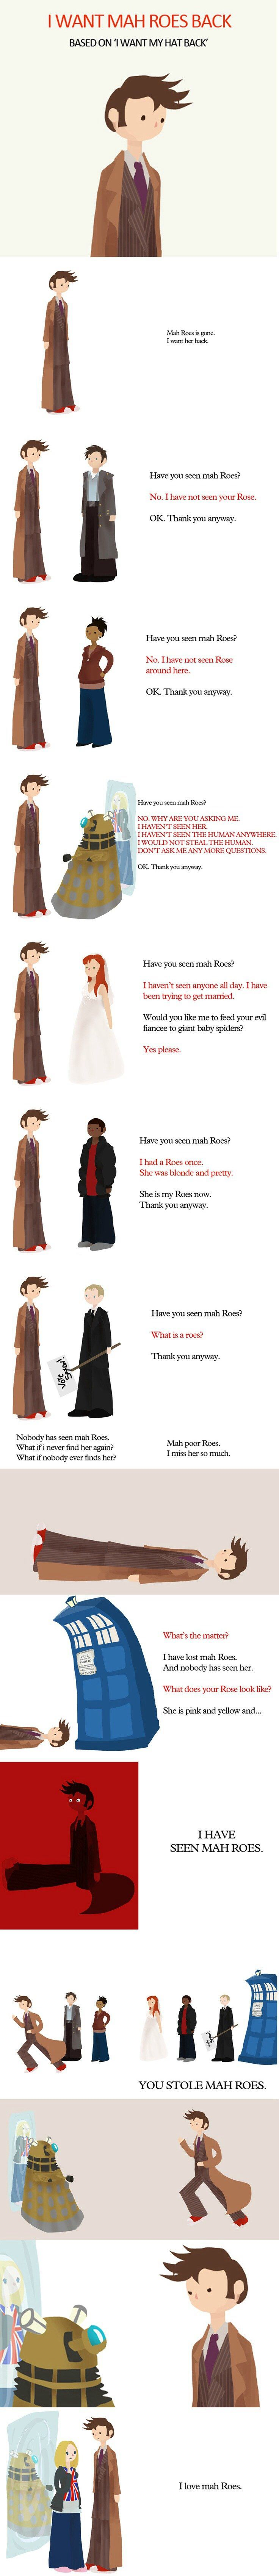 Have you seen my rose #doctor who